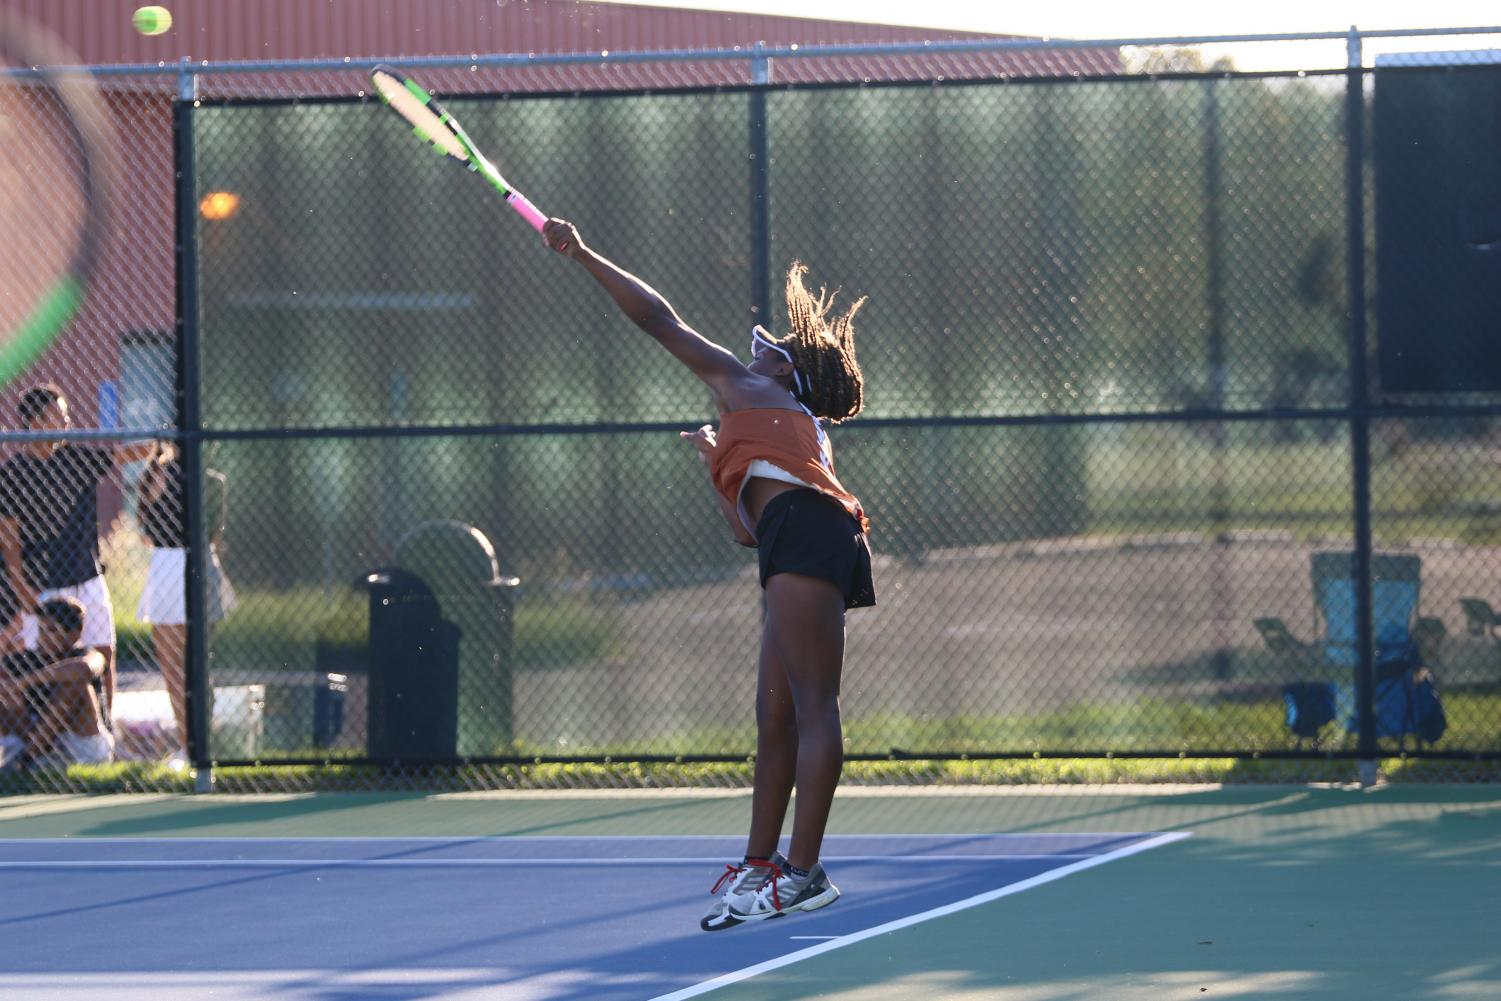 Kiana+Graham+%2720+jumps+as+she+serves+to+her+opponent.